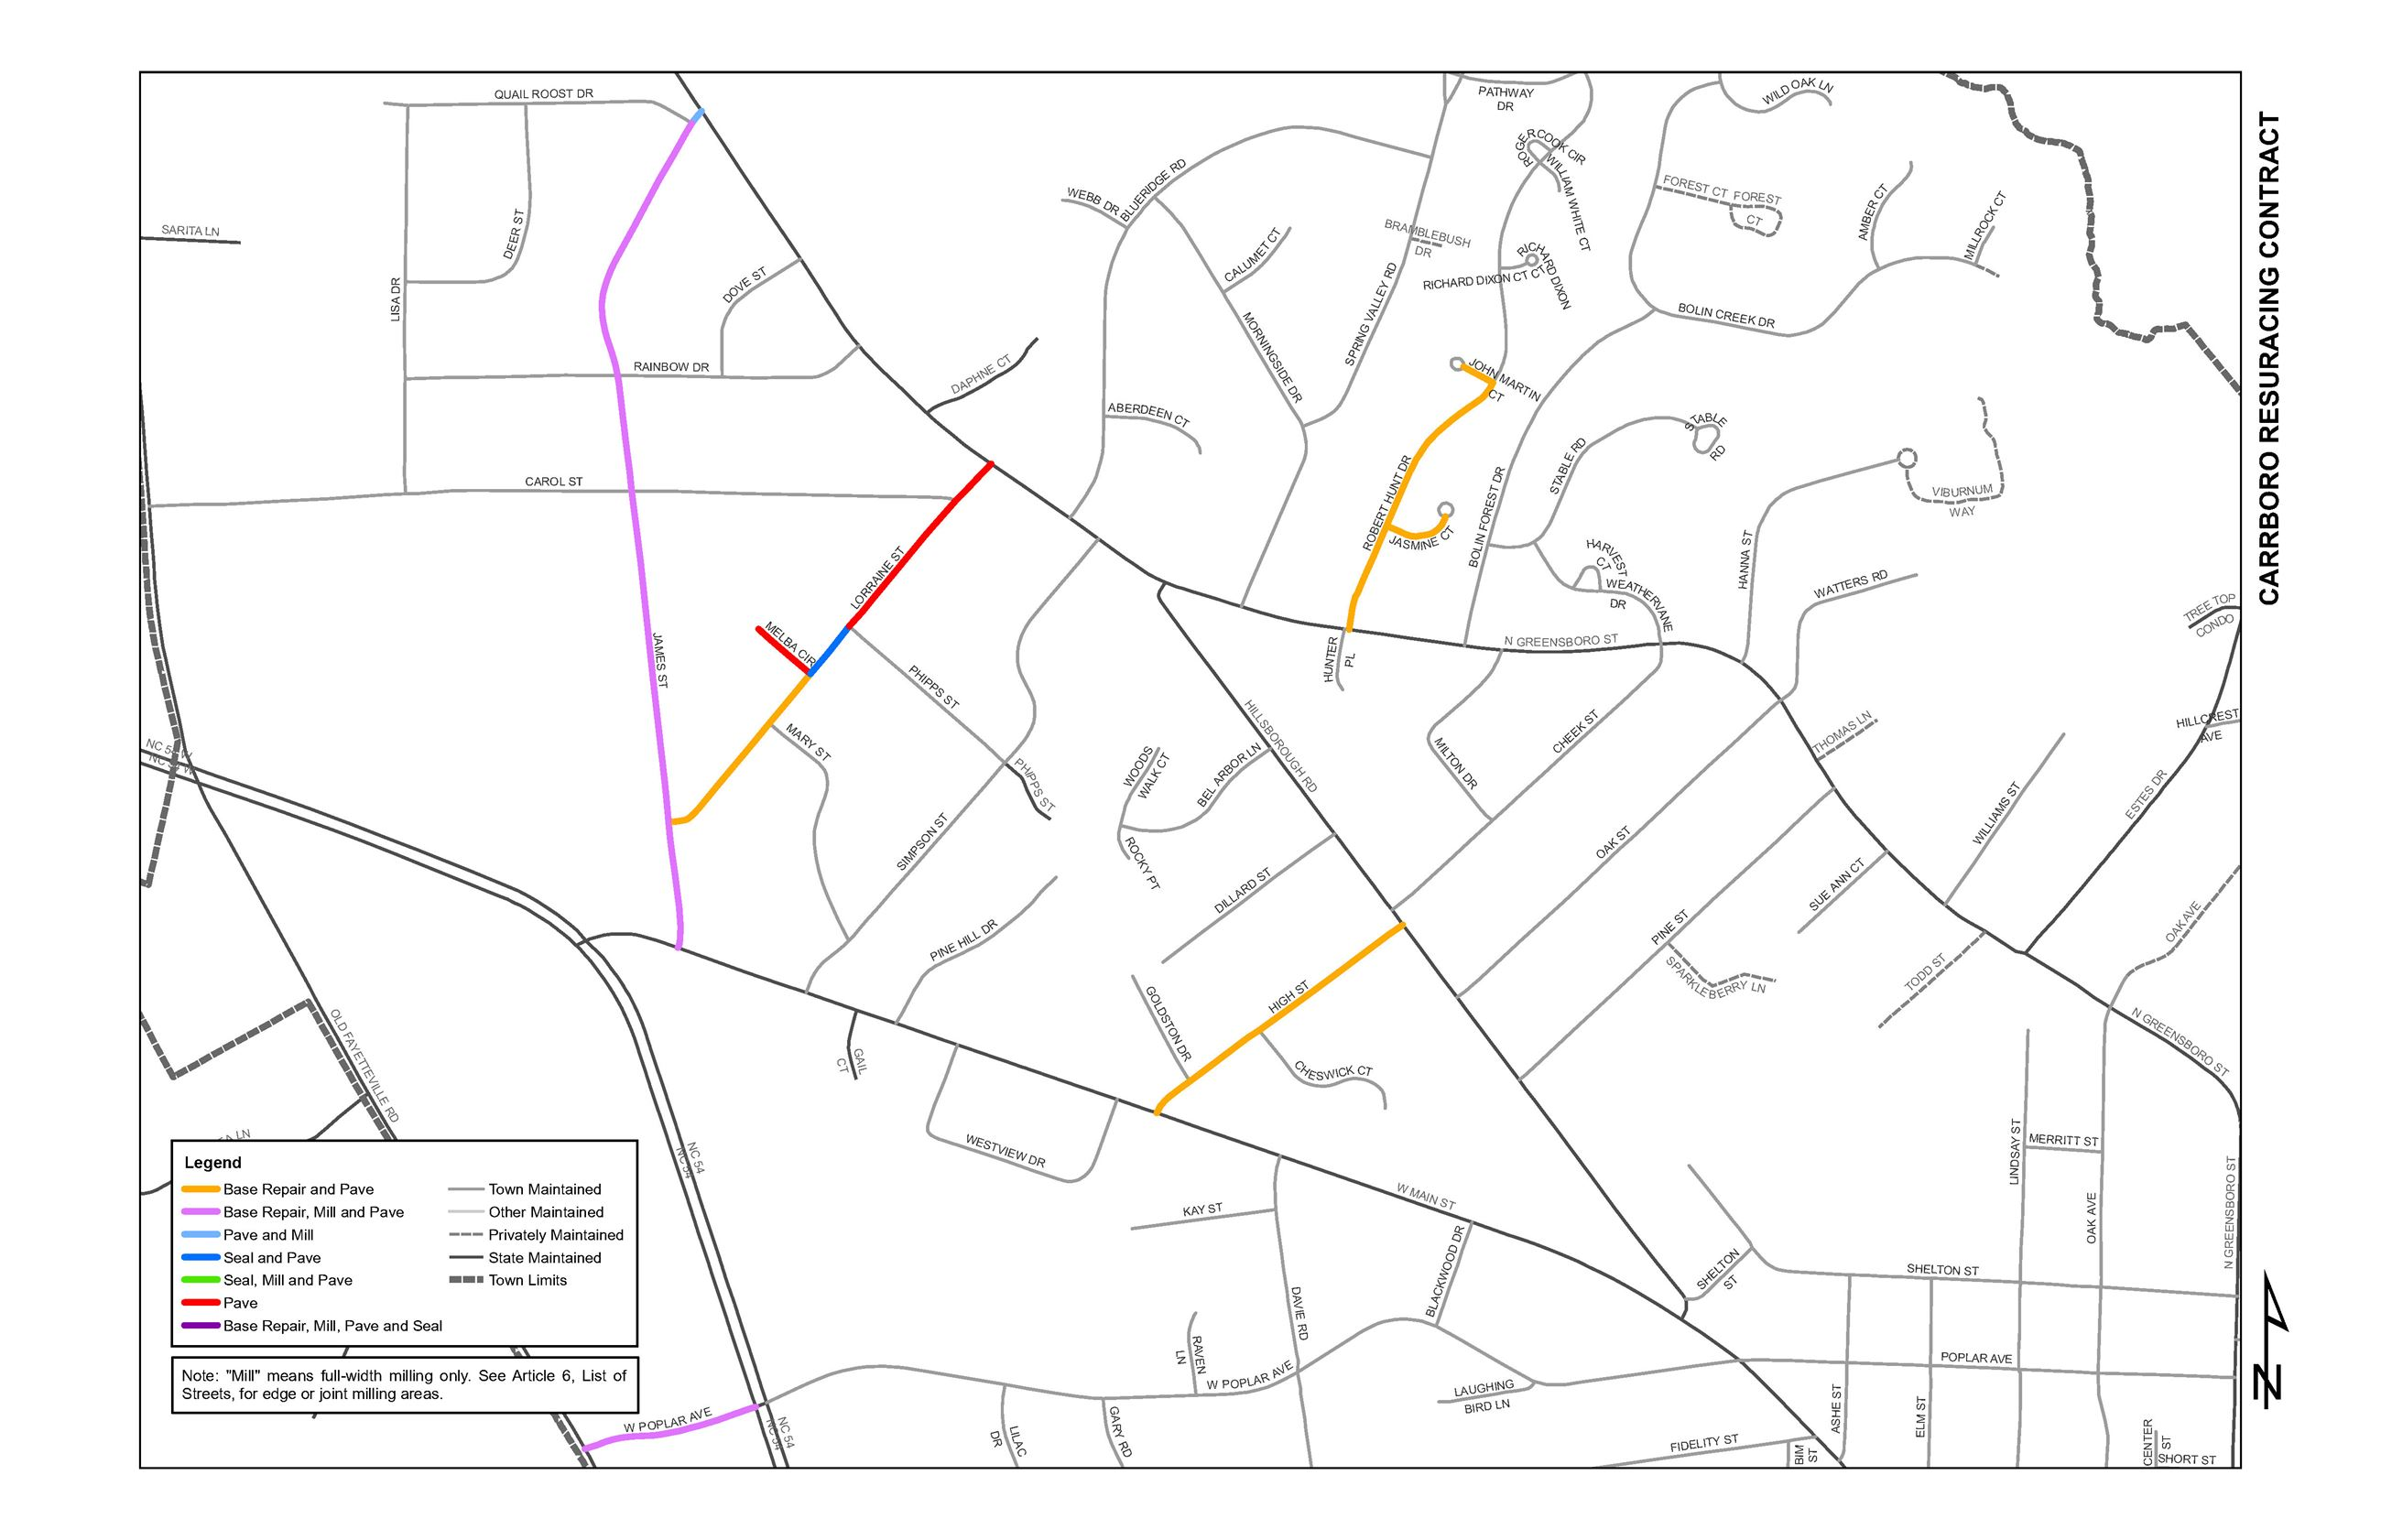 2020 Street Resurfacing Project Map Page 1